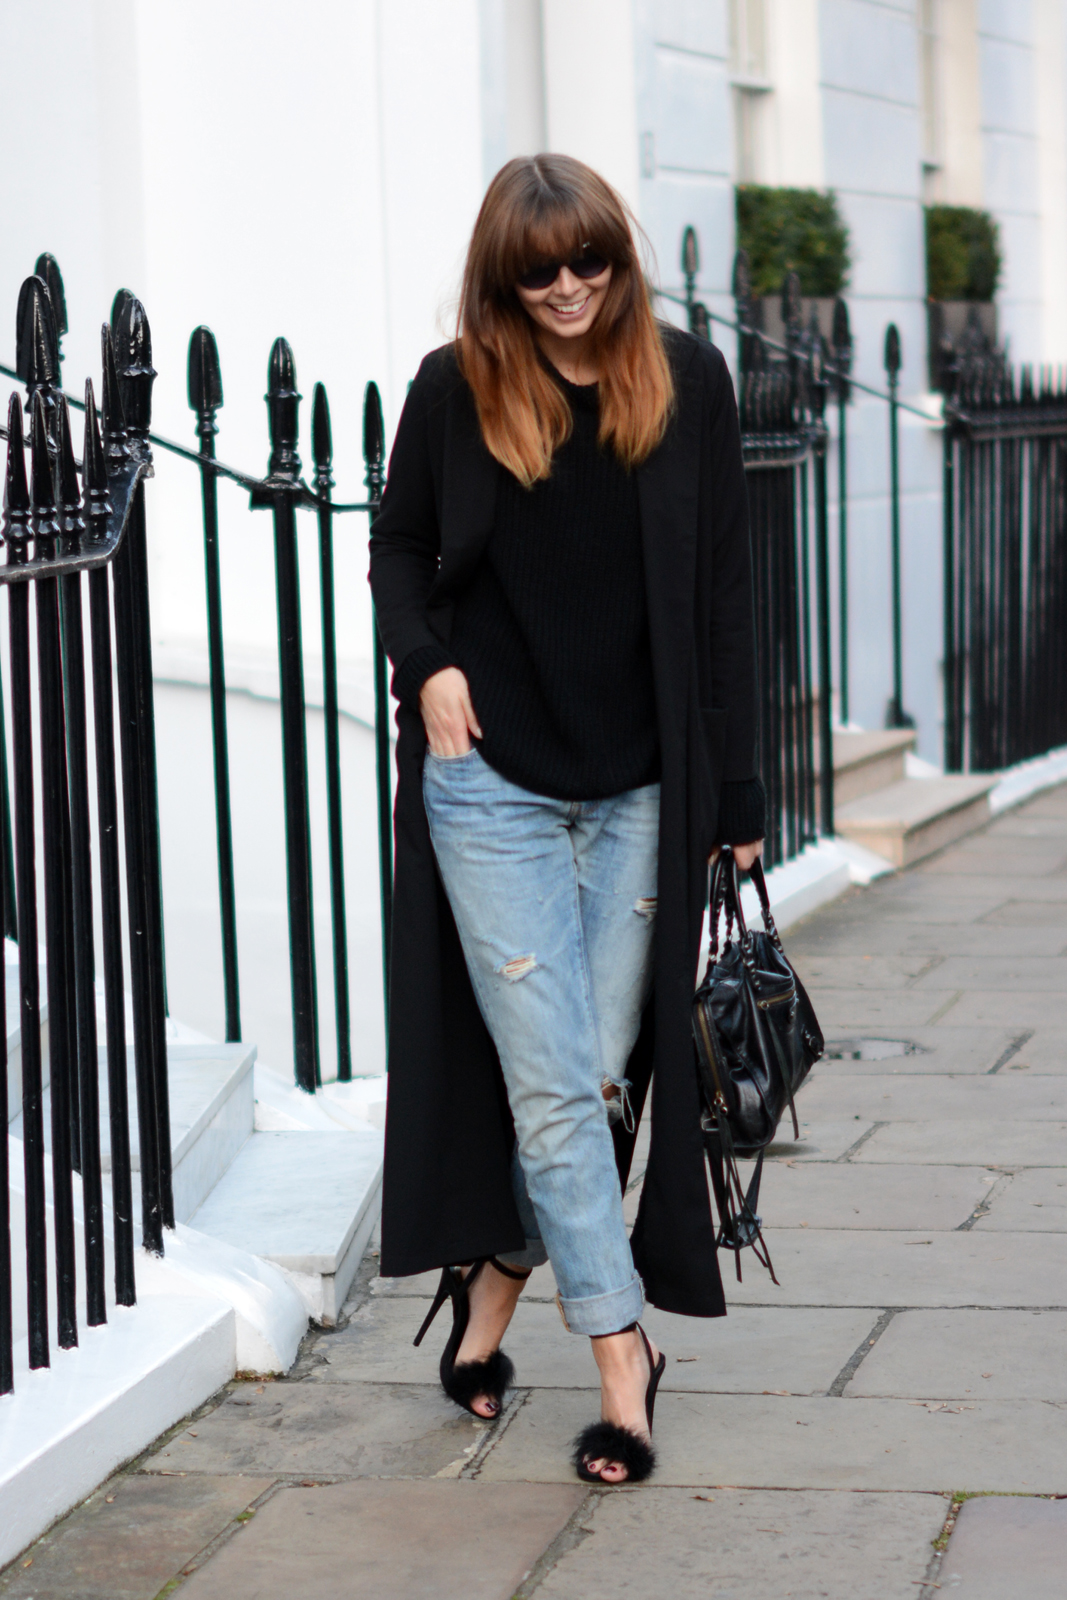 EJSTYLE - Long Black boohoo duster coat, levis 501 boyfriend jeans, Missguided black fluffy feather Carrie heels sandals, Balenciaga motorcycle le dix city bag black, London Street Style